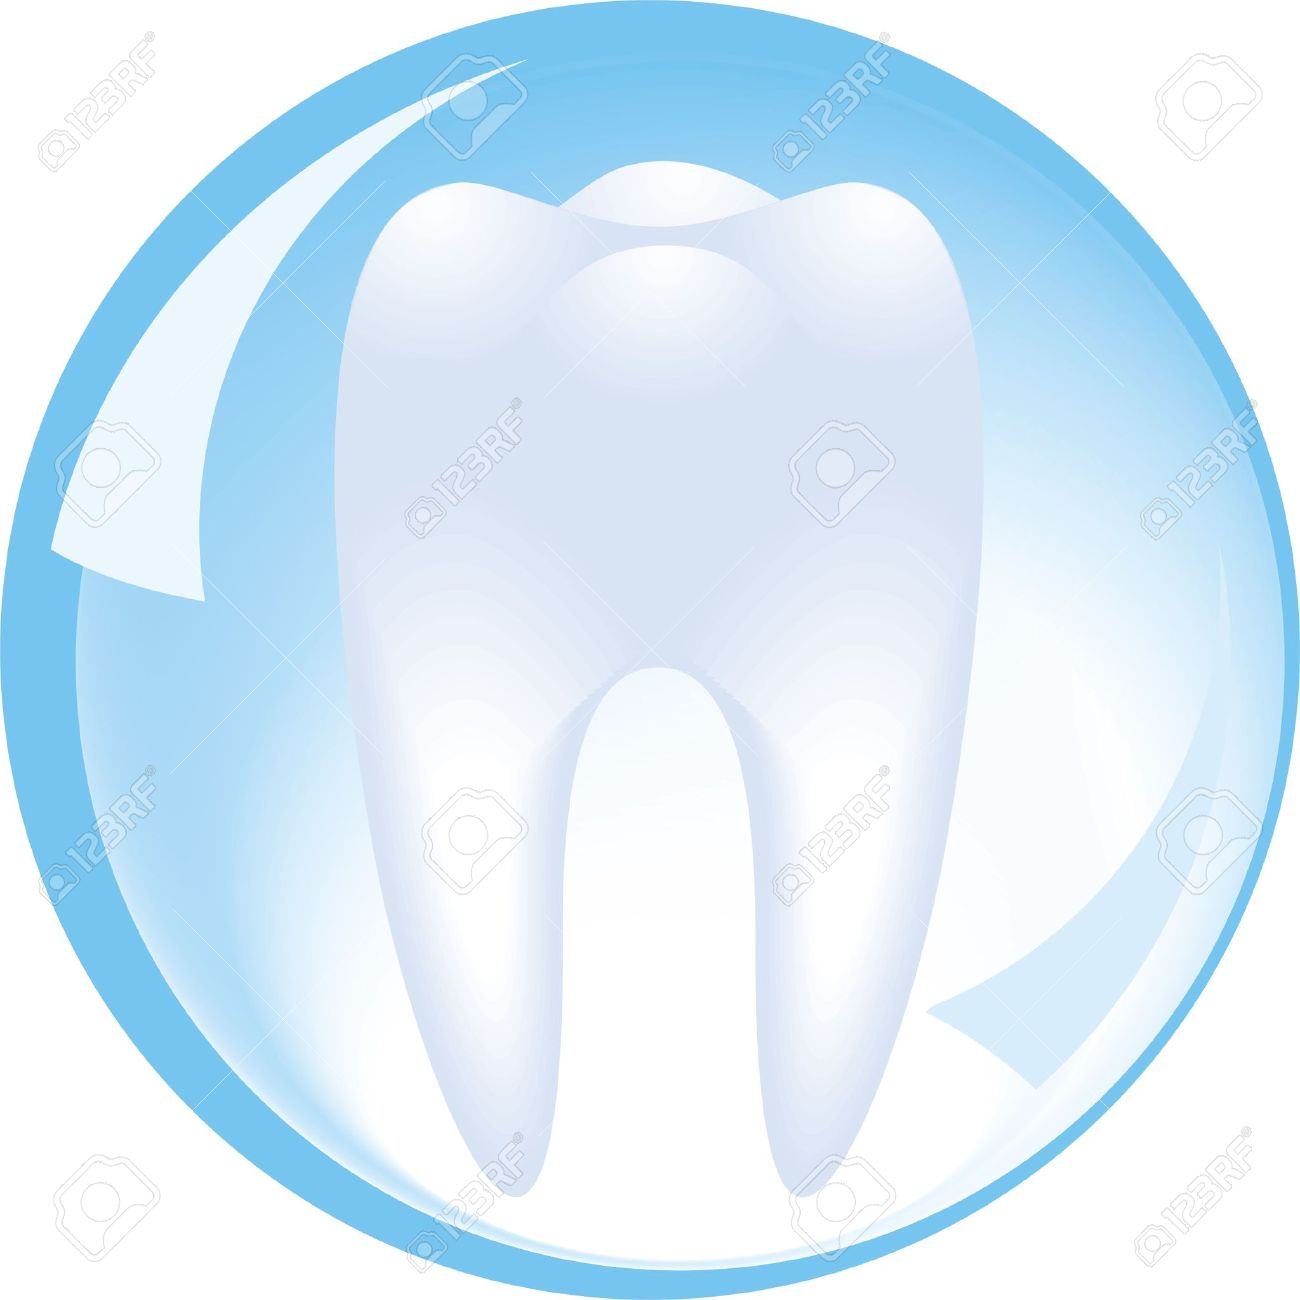 tooth is protected by a glass sphere, dentistry Stock Vector - 8737423